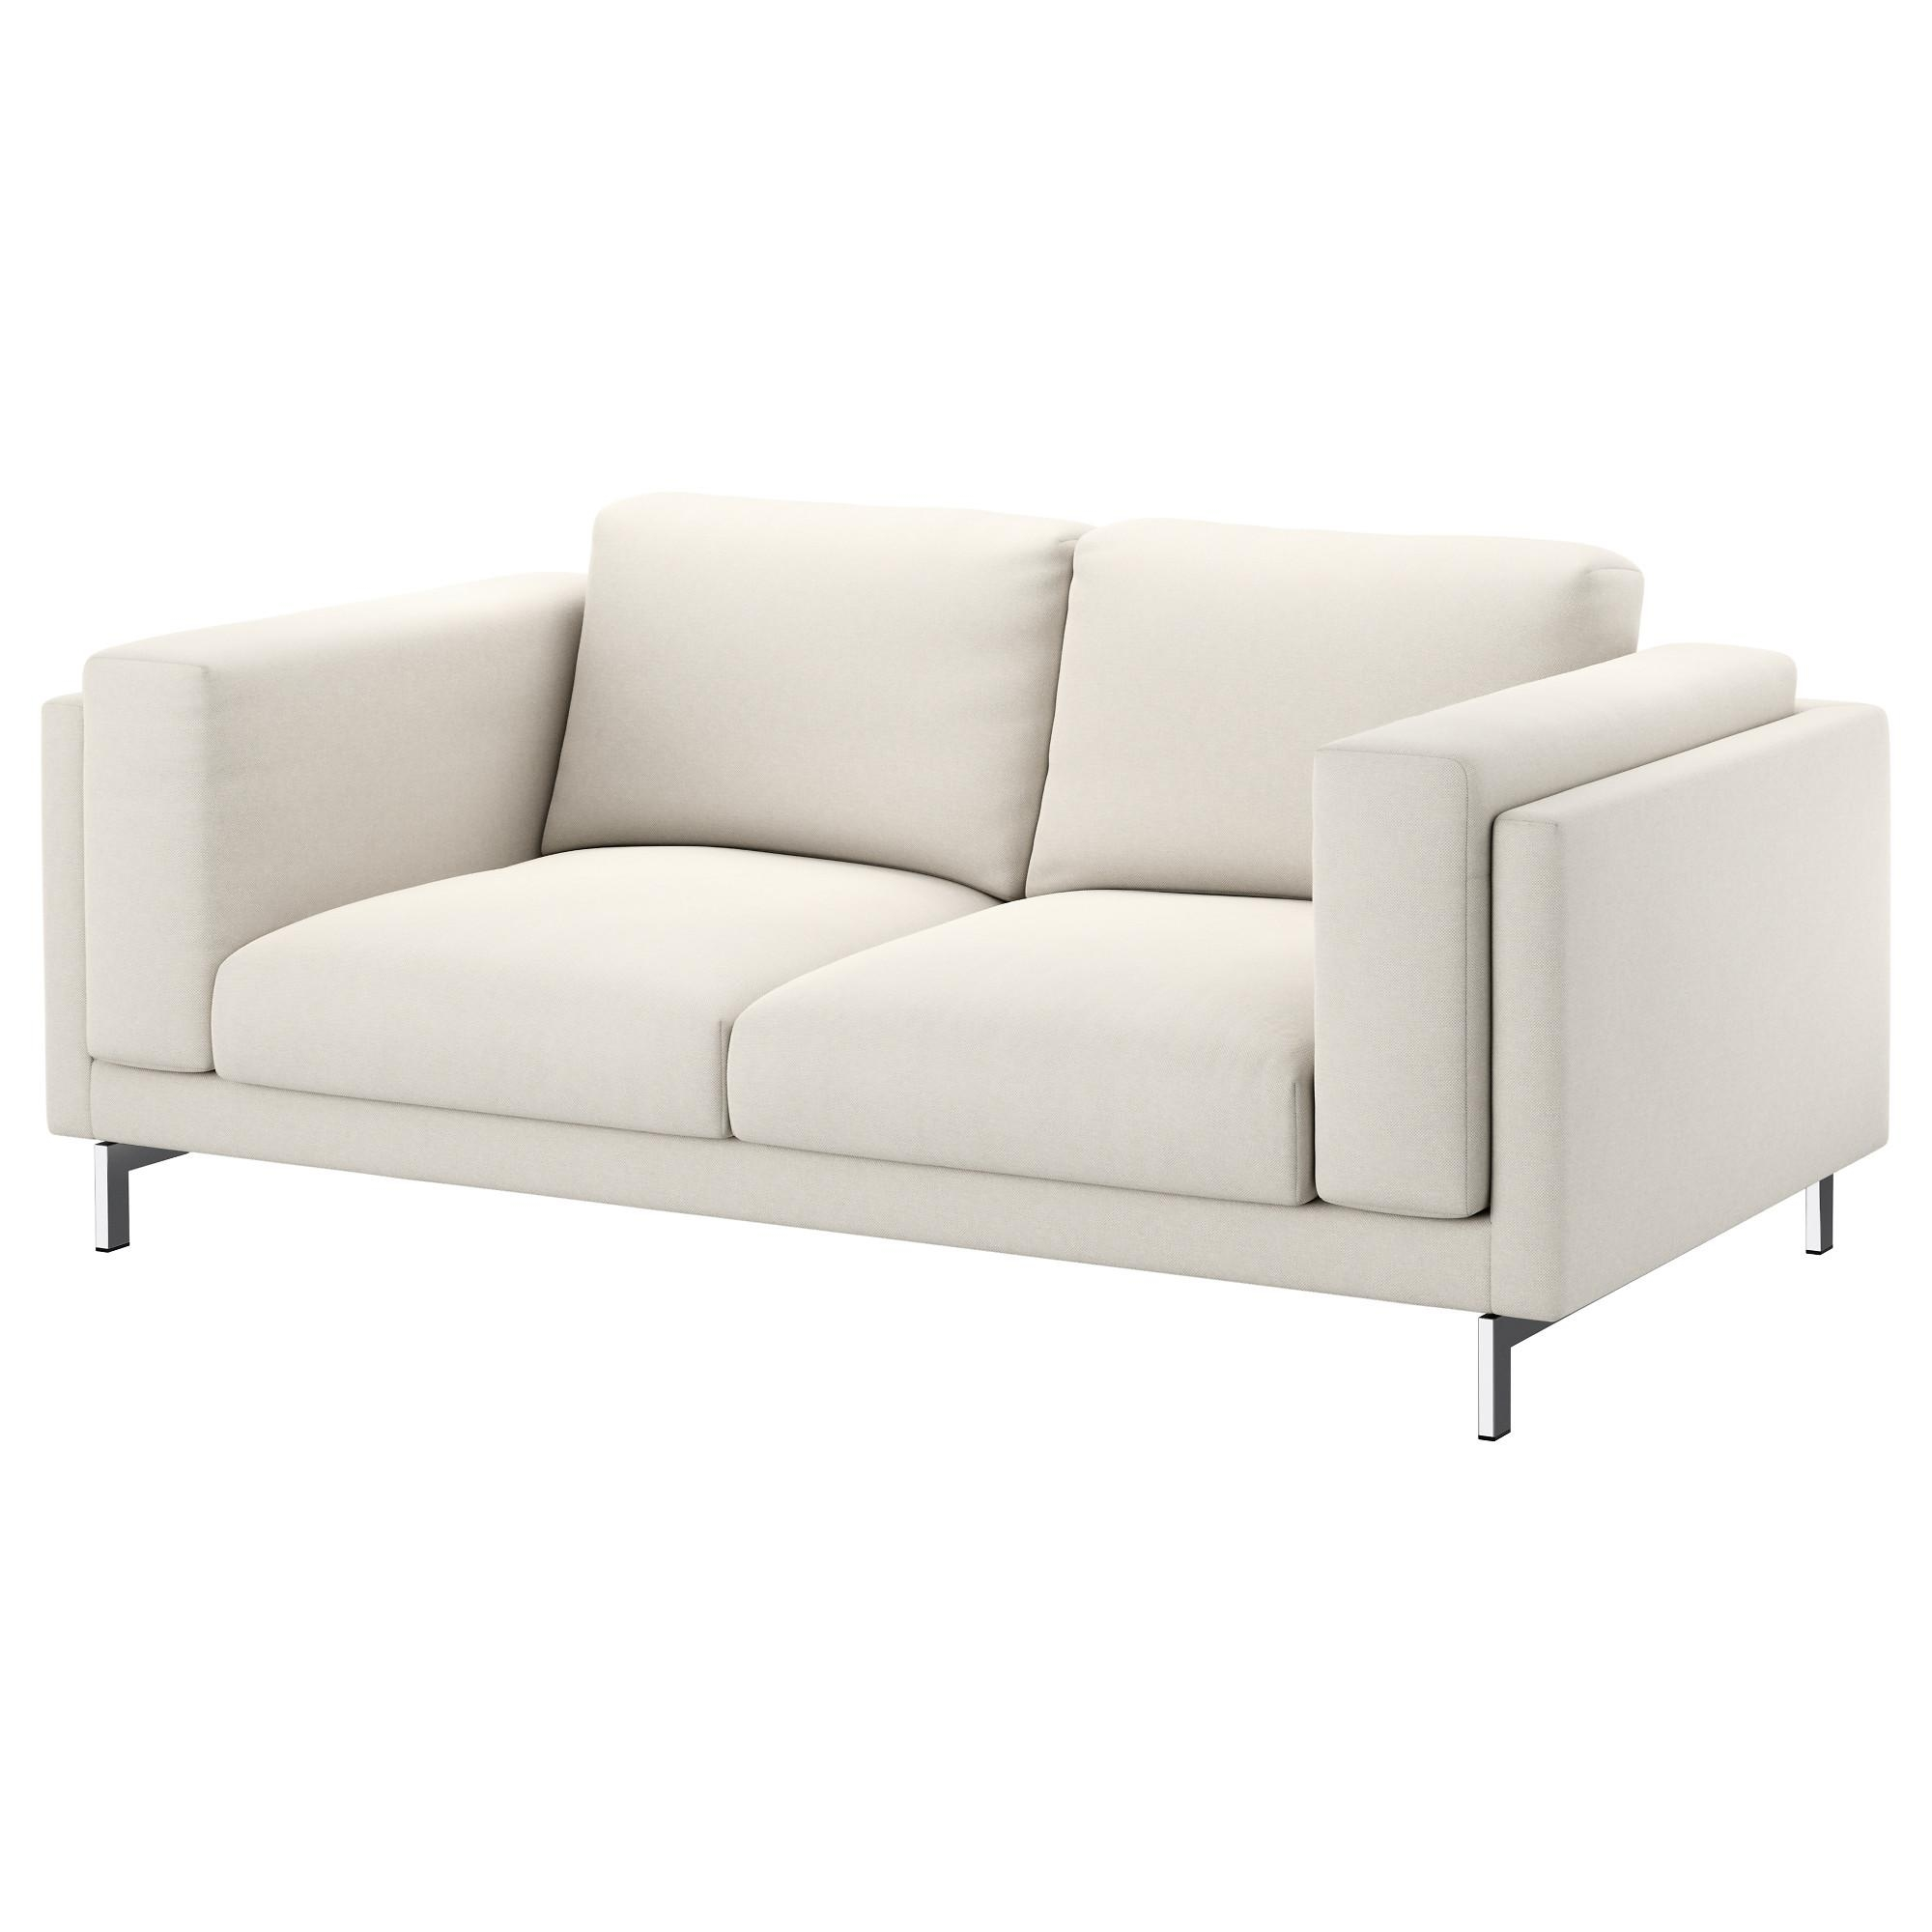 Fancy White Fabric Sofa 57 In Contemporary Sofa Inspiration With Throughout White Fabric Sofas (Image 7 of 20)